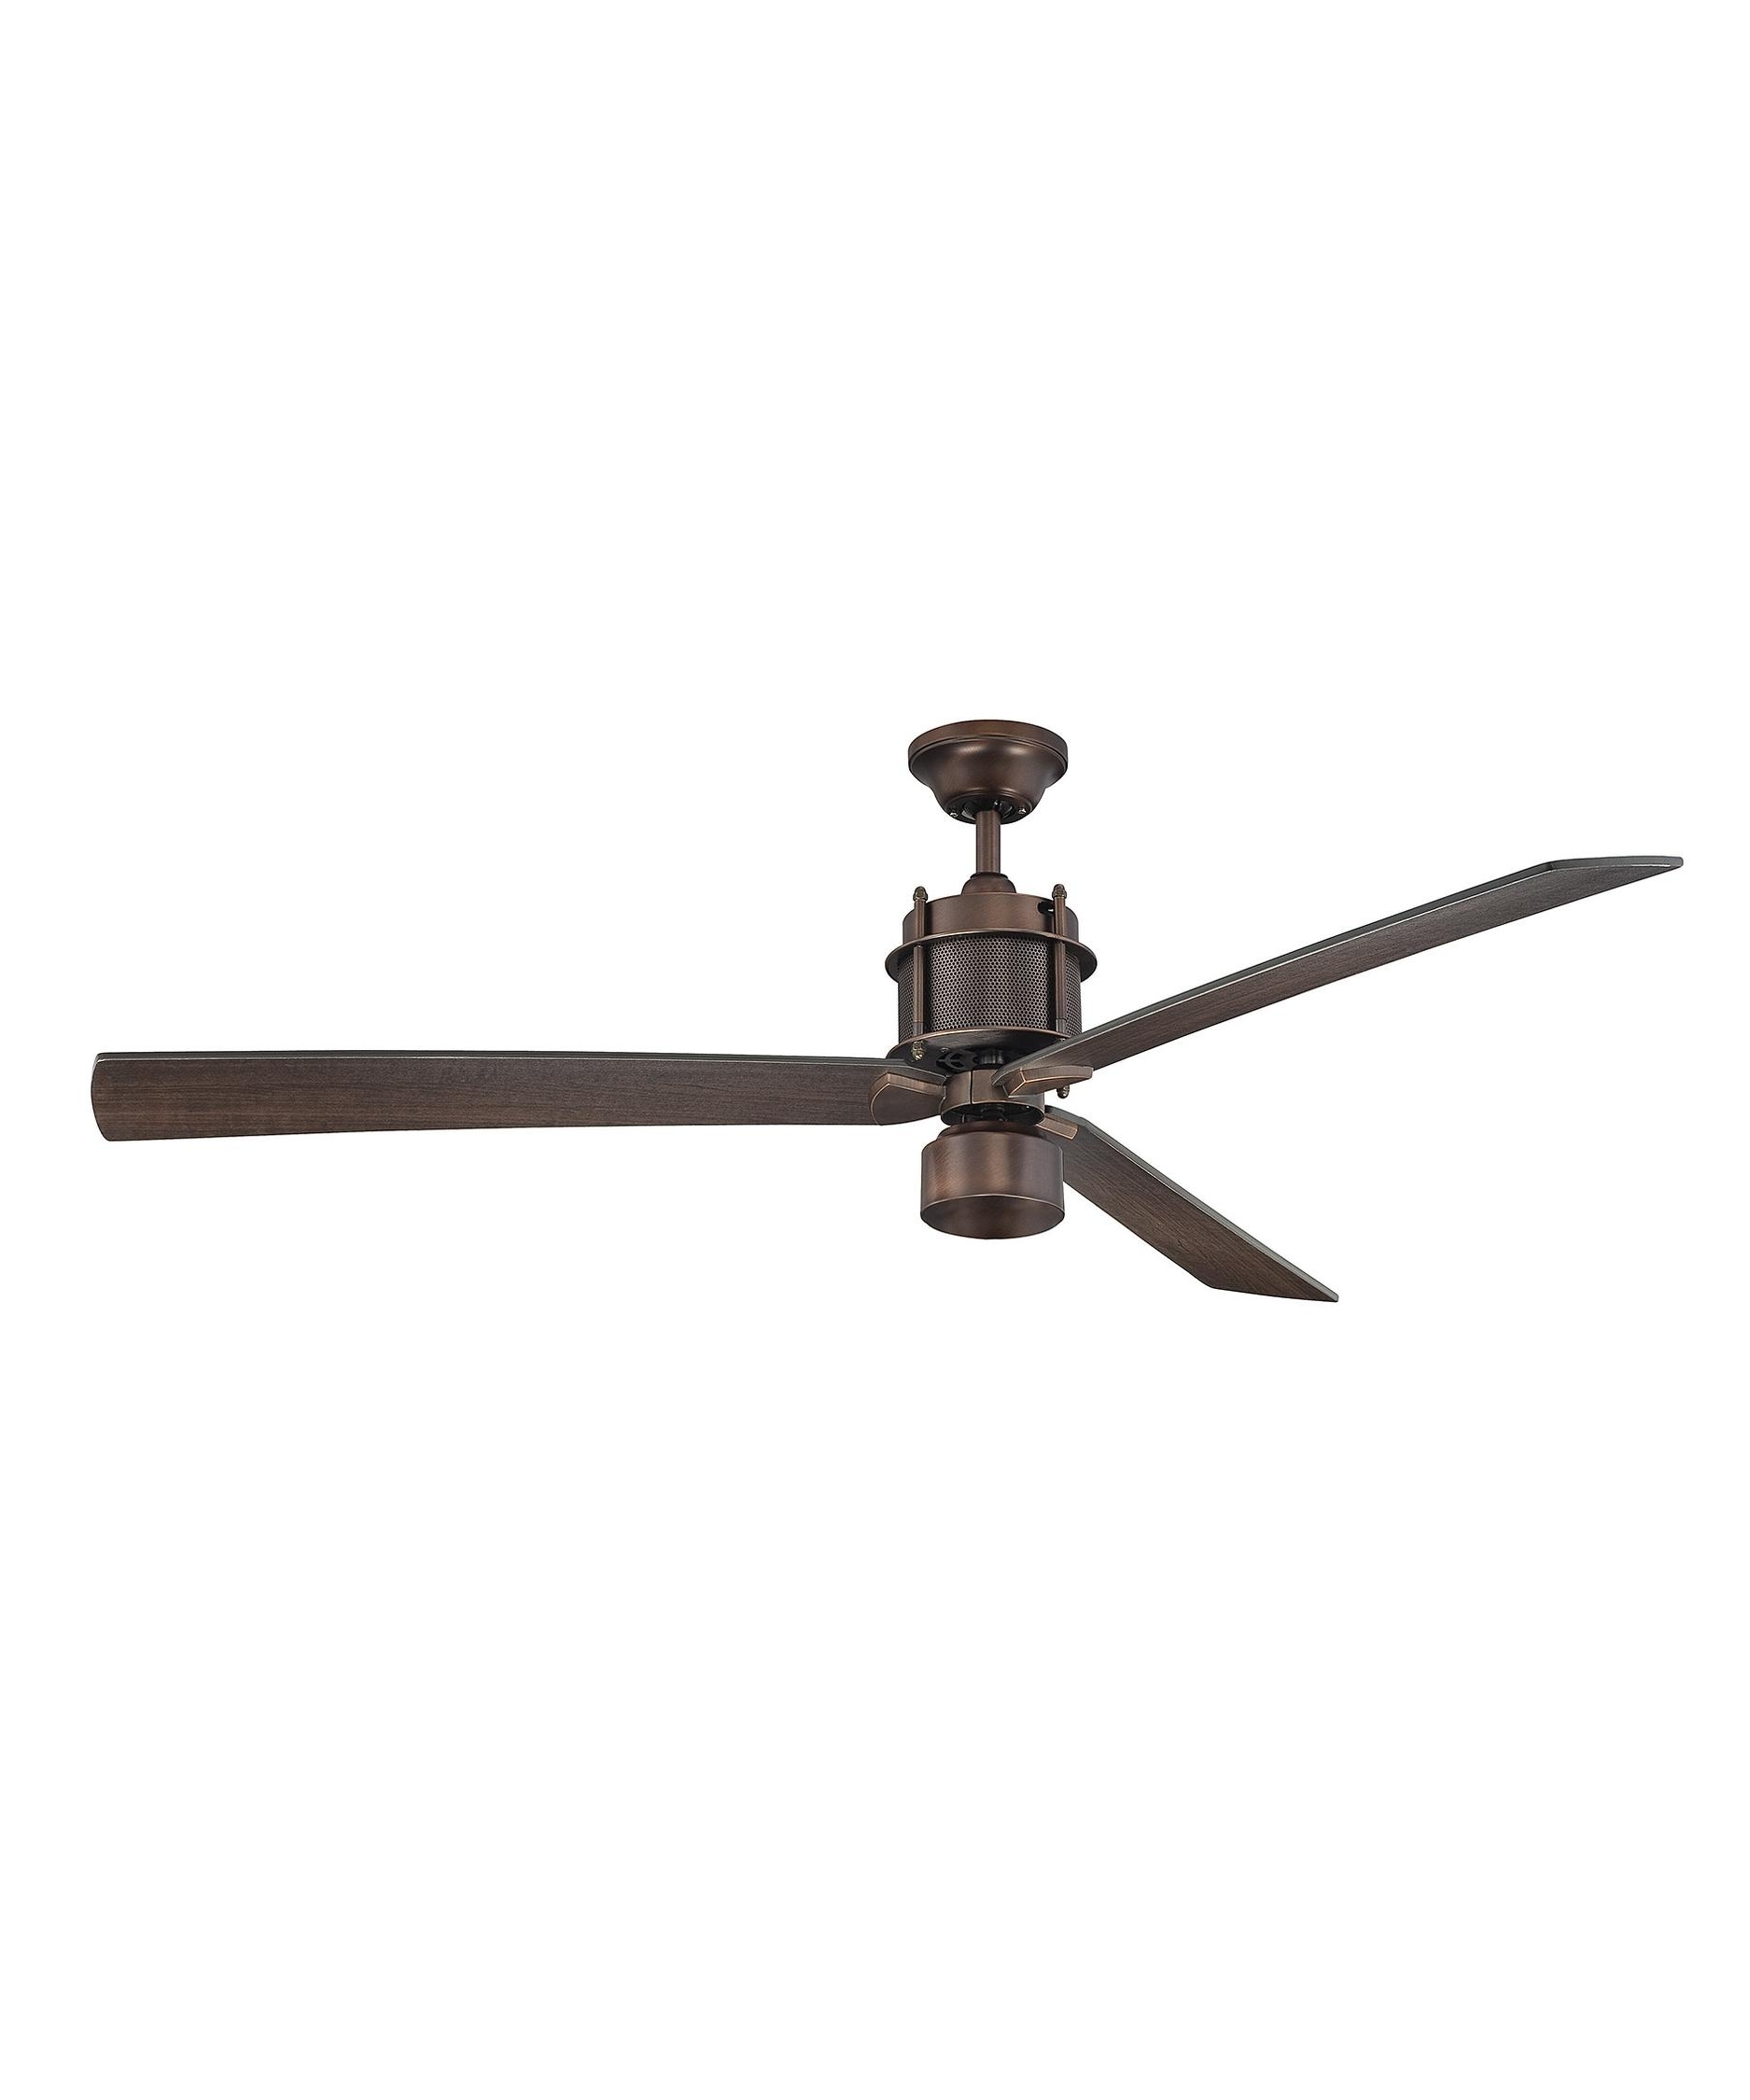 Outdoor Ceiling Fans With Metal Blades Regarding Most Current Savoy House 56 870 3 Muir 56 Inch 3 Blade Ceiling Fan (View 12 of 20)